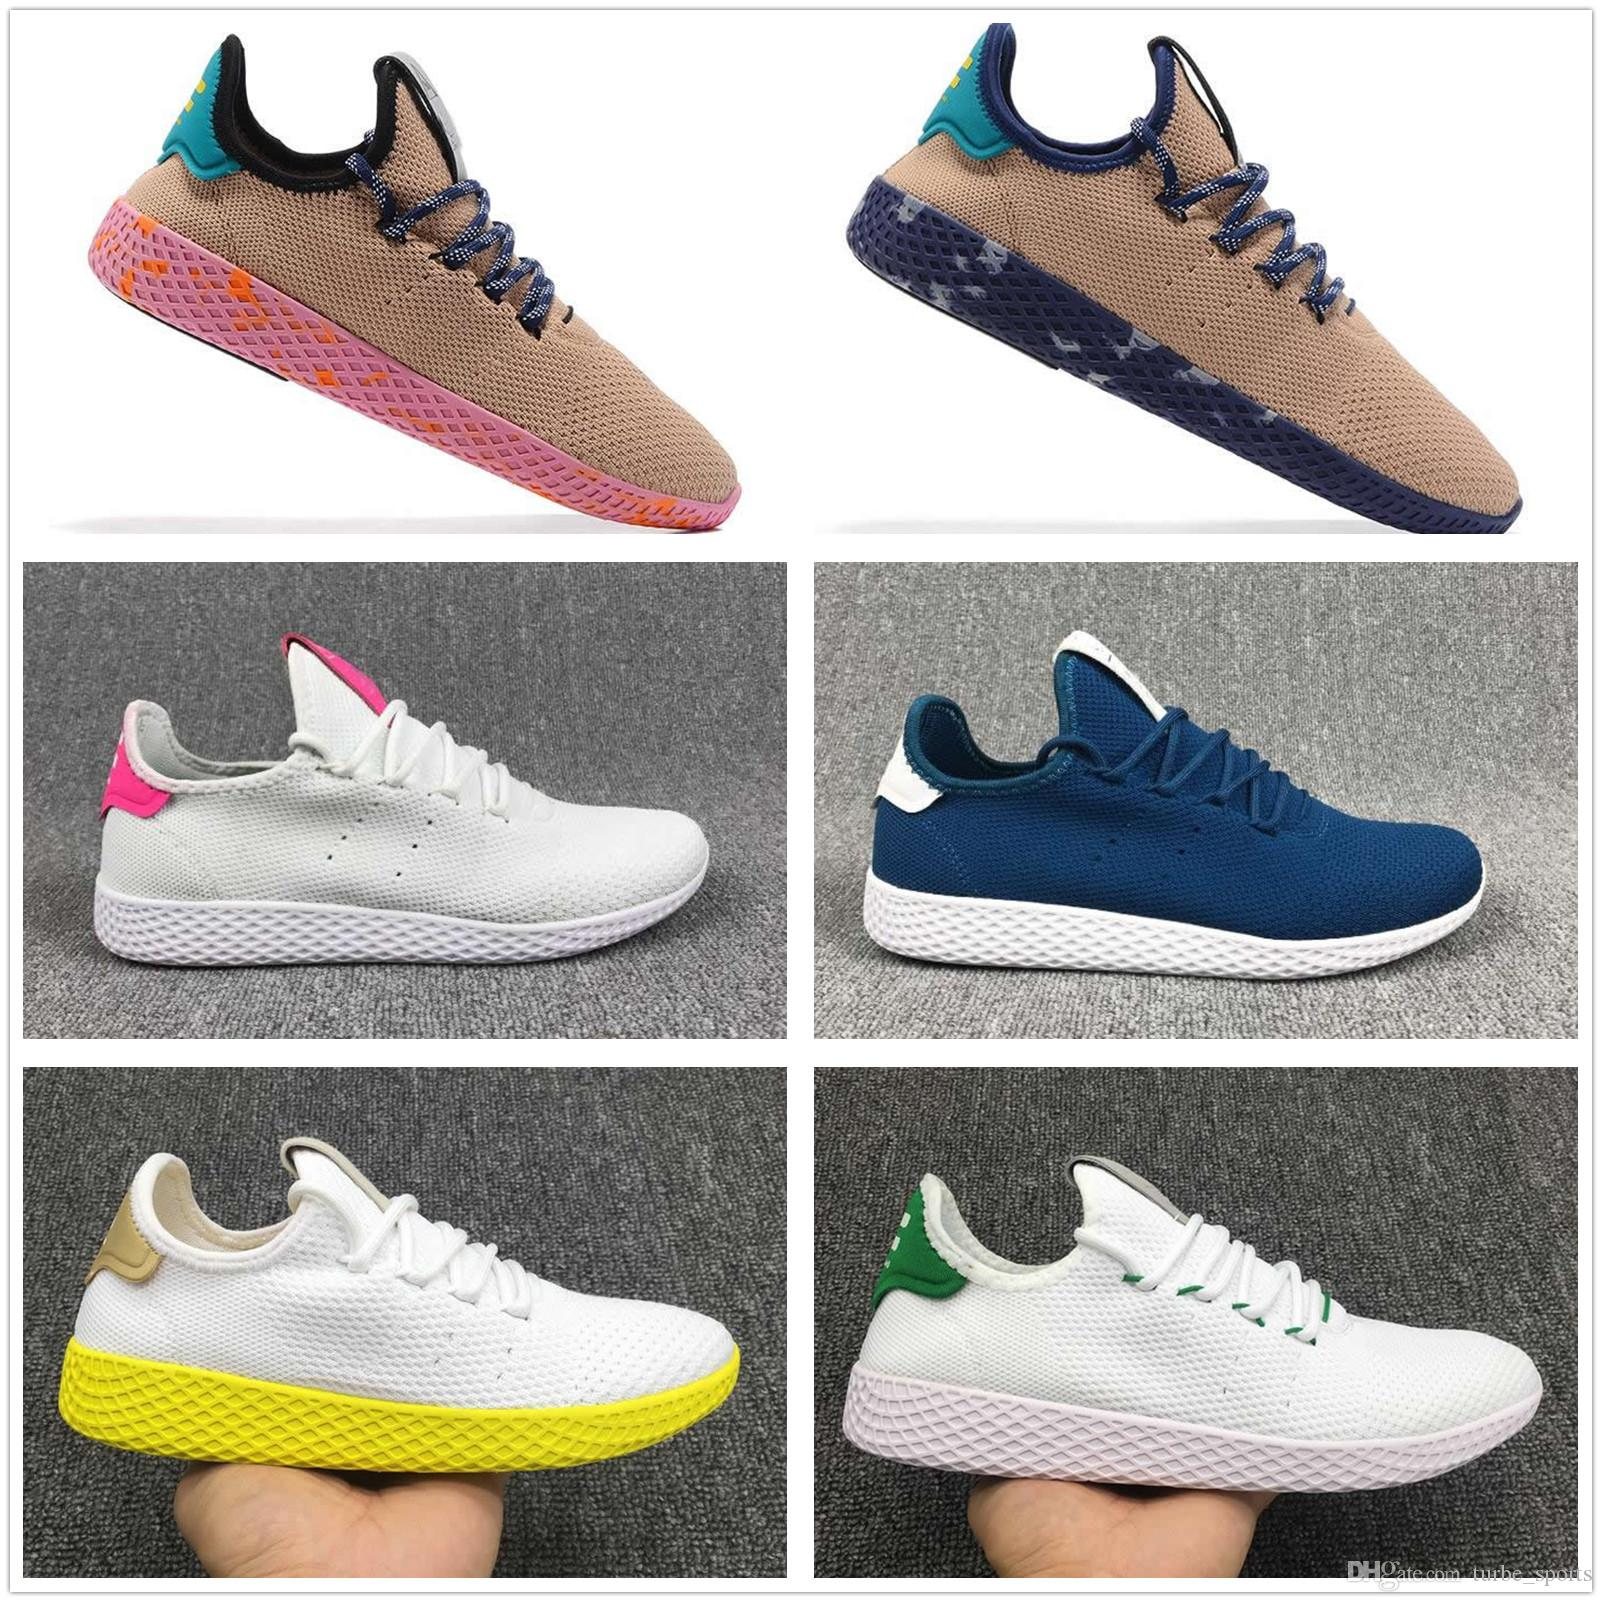 5df6ecfe3 2018 Scarpe Chaussures Stan Smith x Pharrell Williams Tenis HU Primeknit  hombres mujeres Running Shoes Sneaker transpirable Runner deportes zapatos